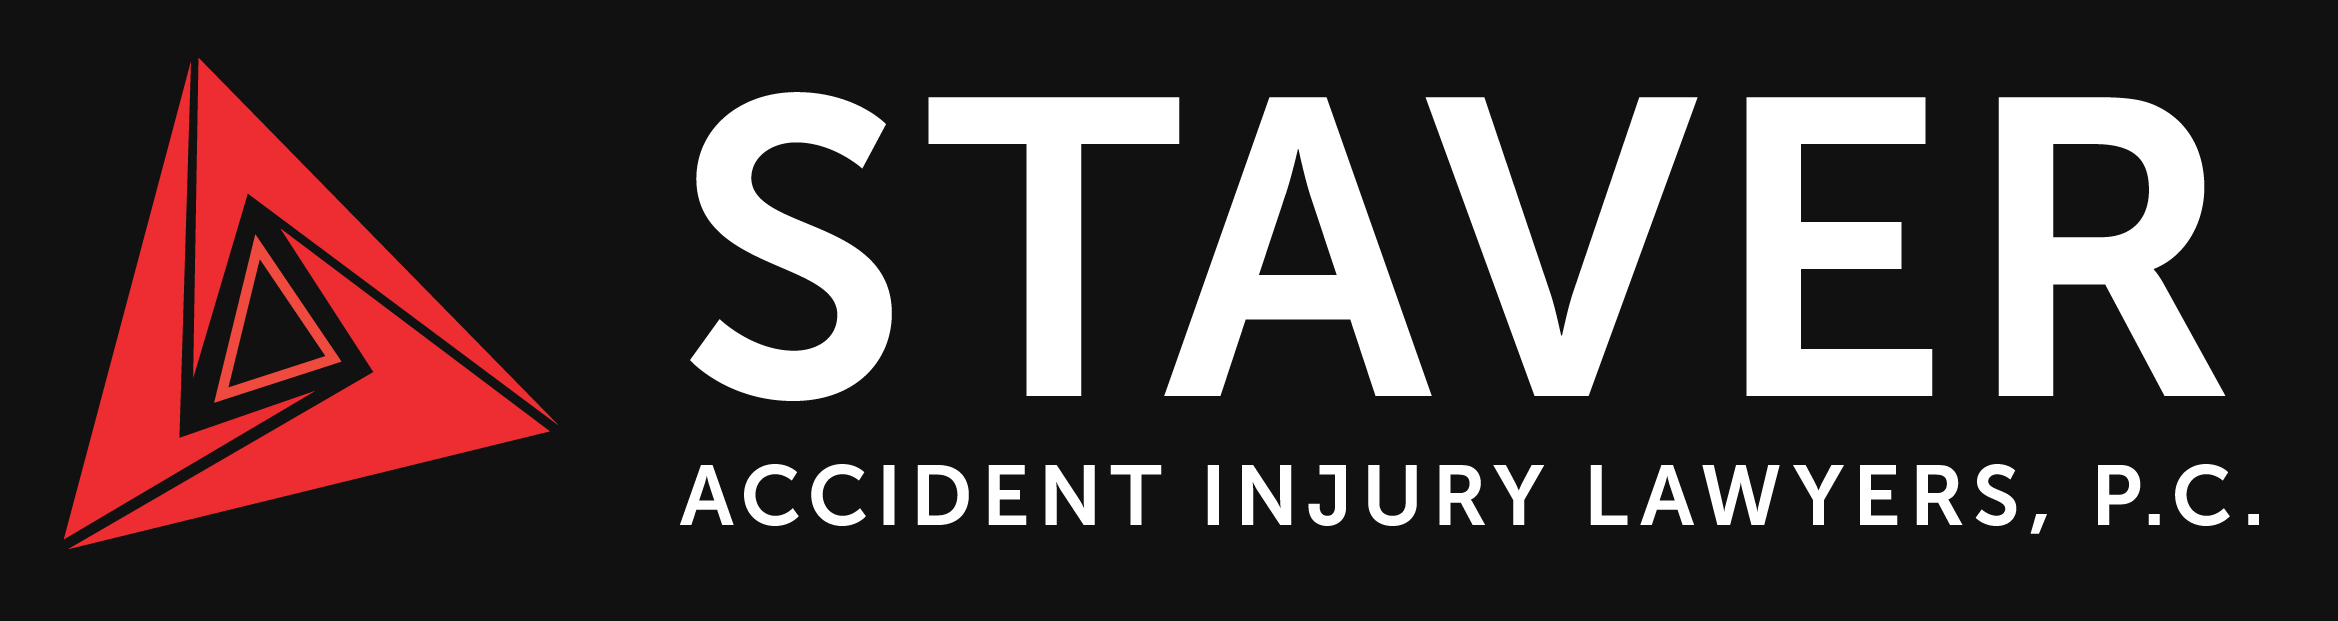 Staver Accident Injury Lawyers, P.C.